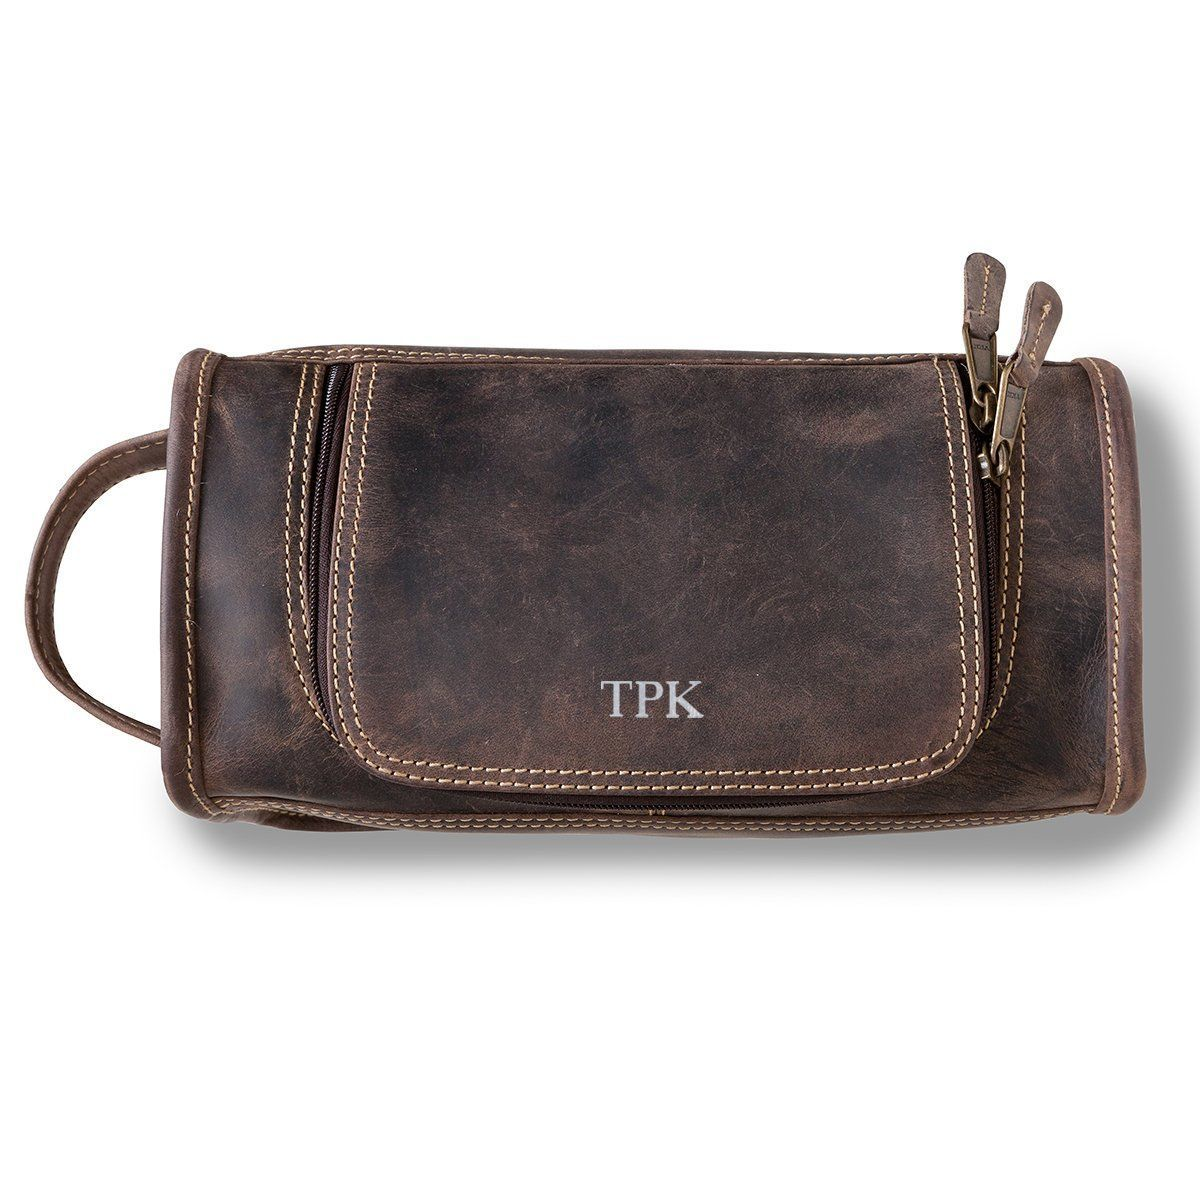 Personalized Borello Leather Distressed Brown Travel Dopp Kit